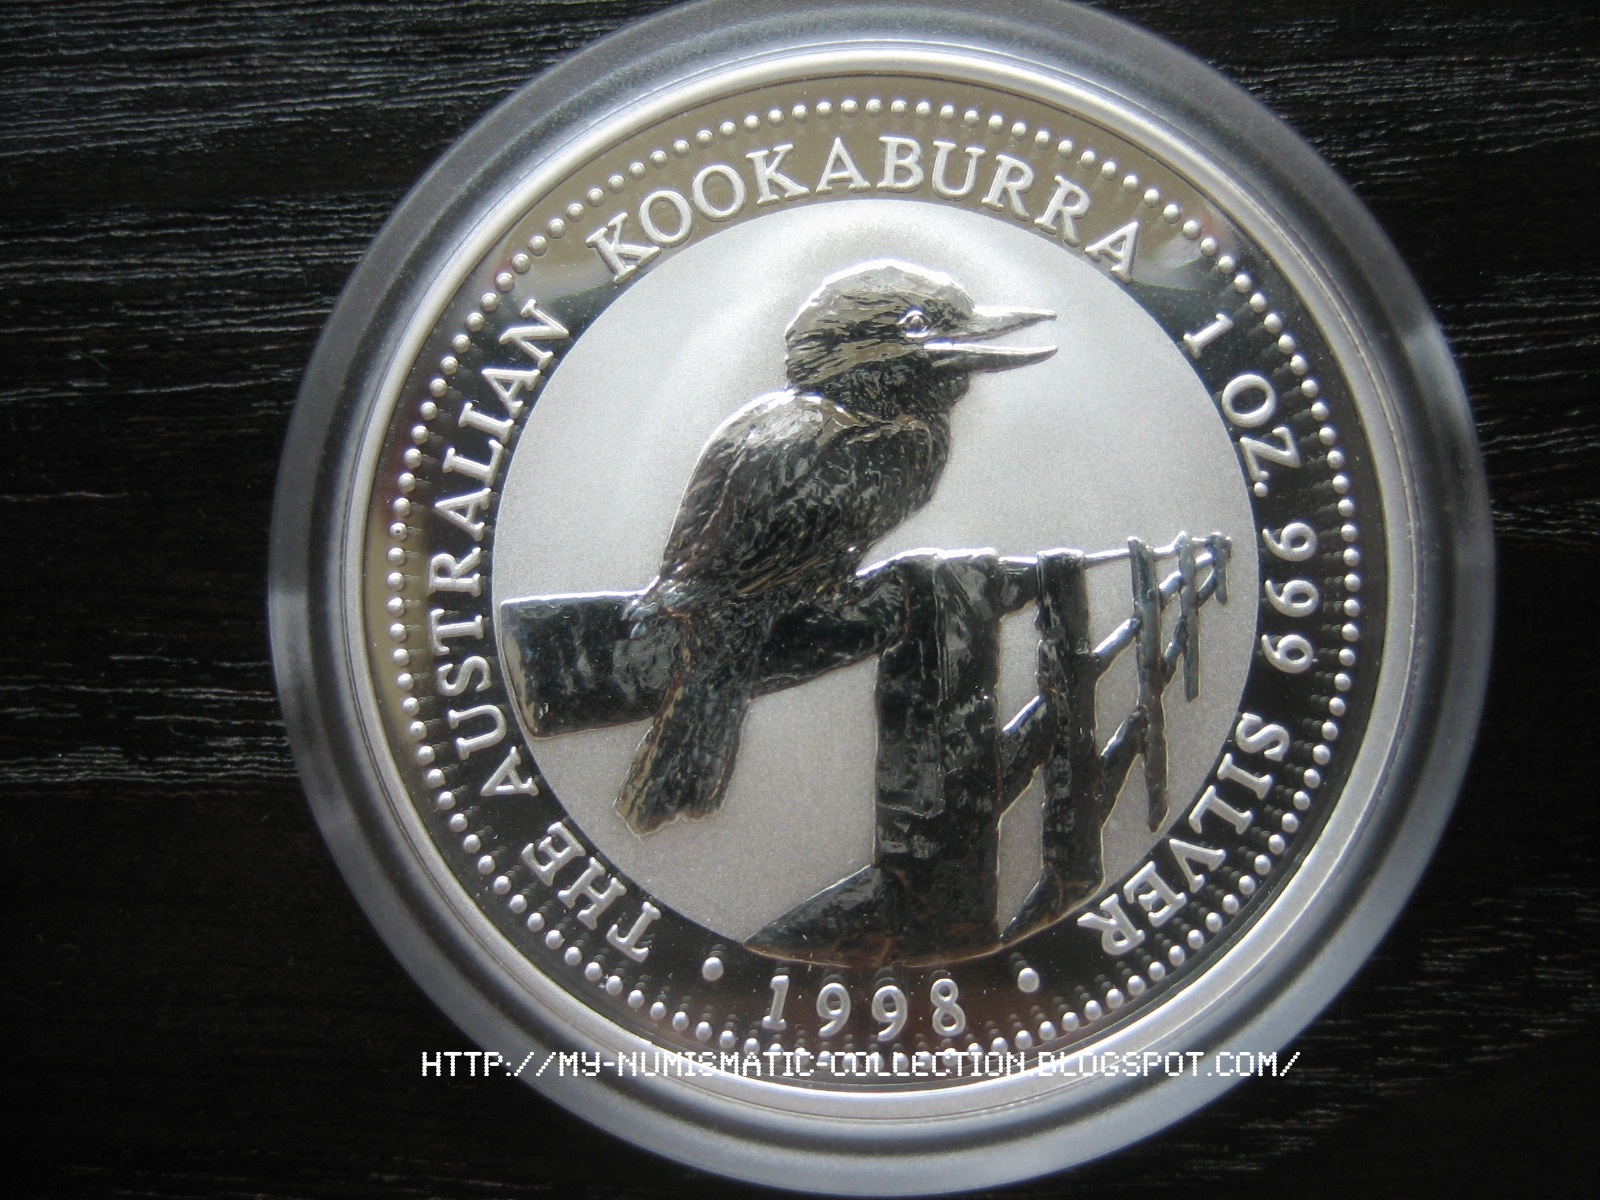 Numismatic Collection 1998 Australian Silver Kookaburra